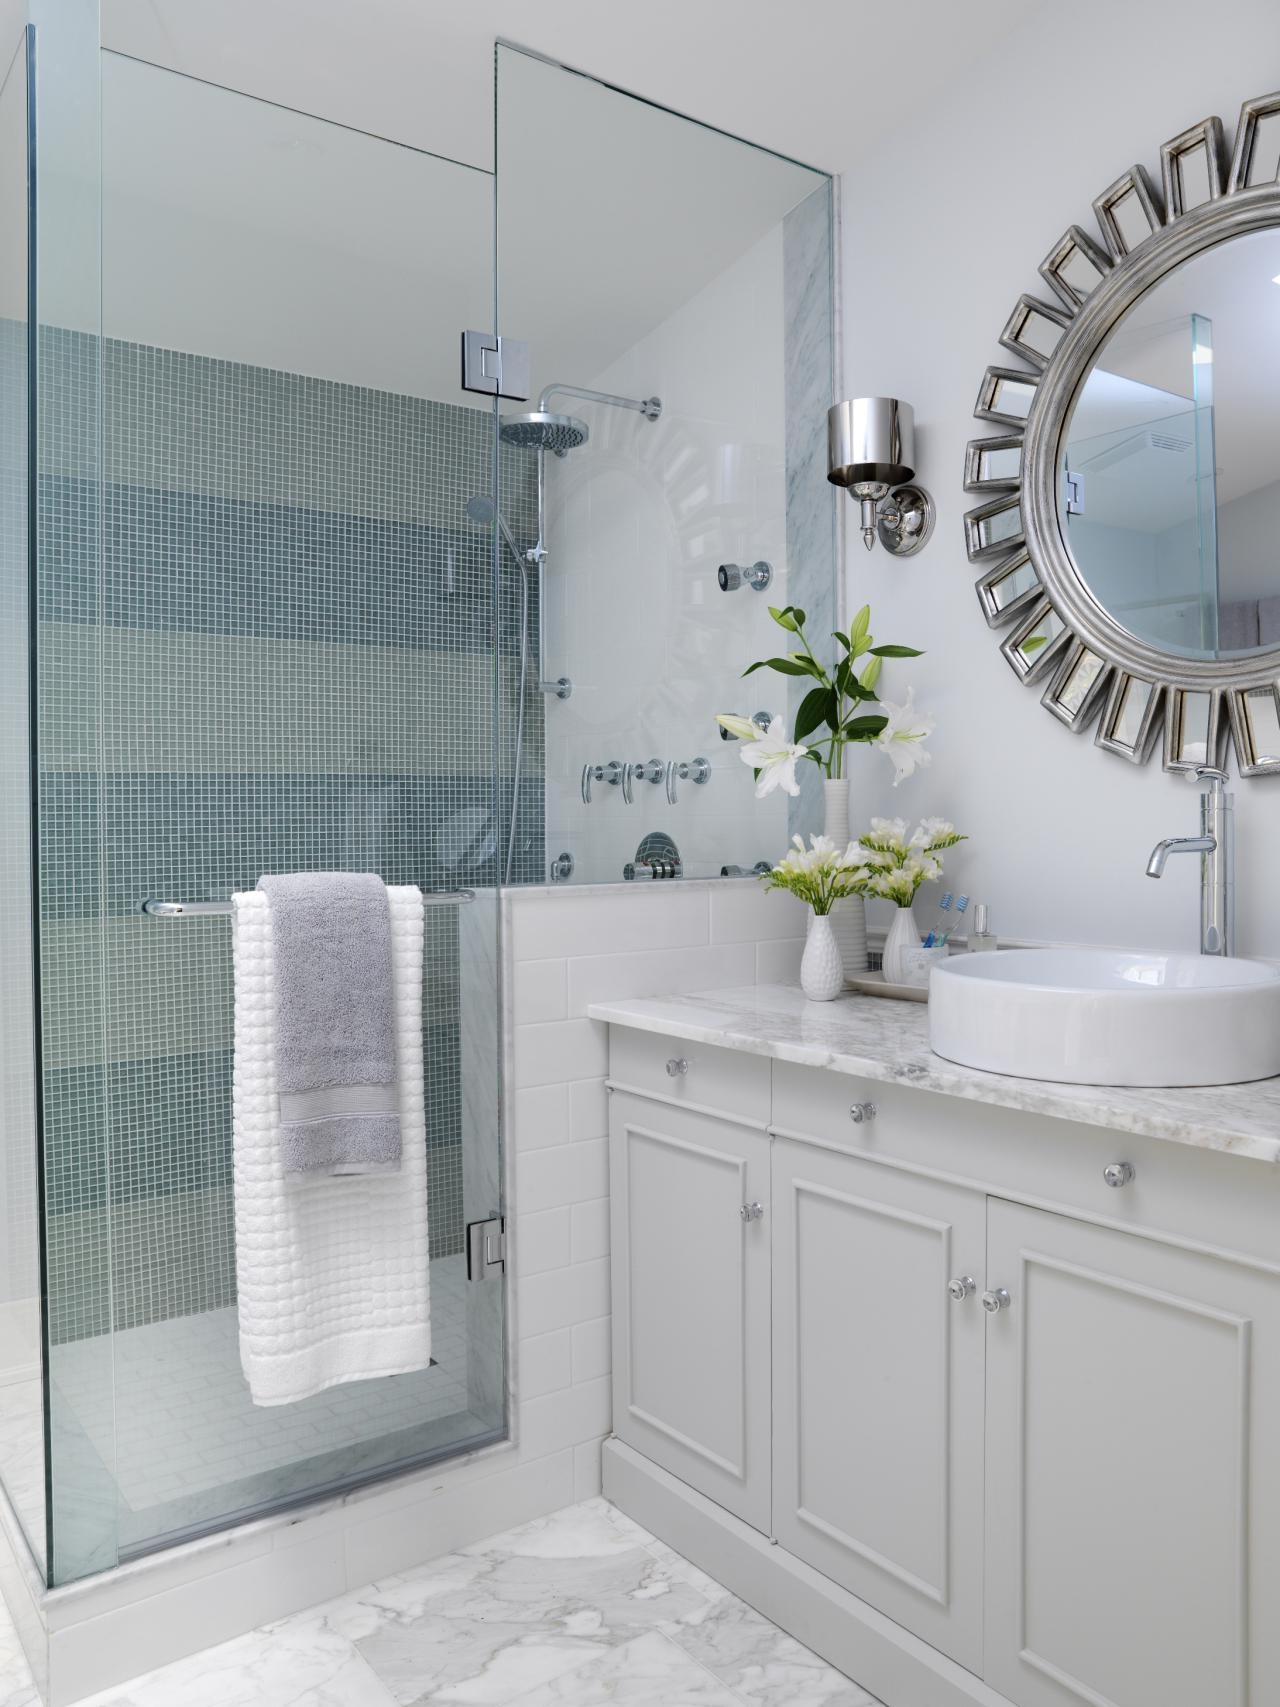 applying bathrooms designs small spaces